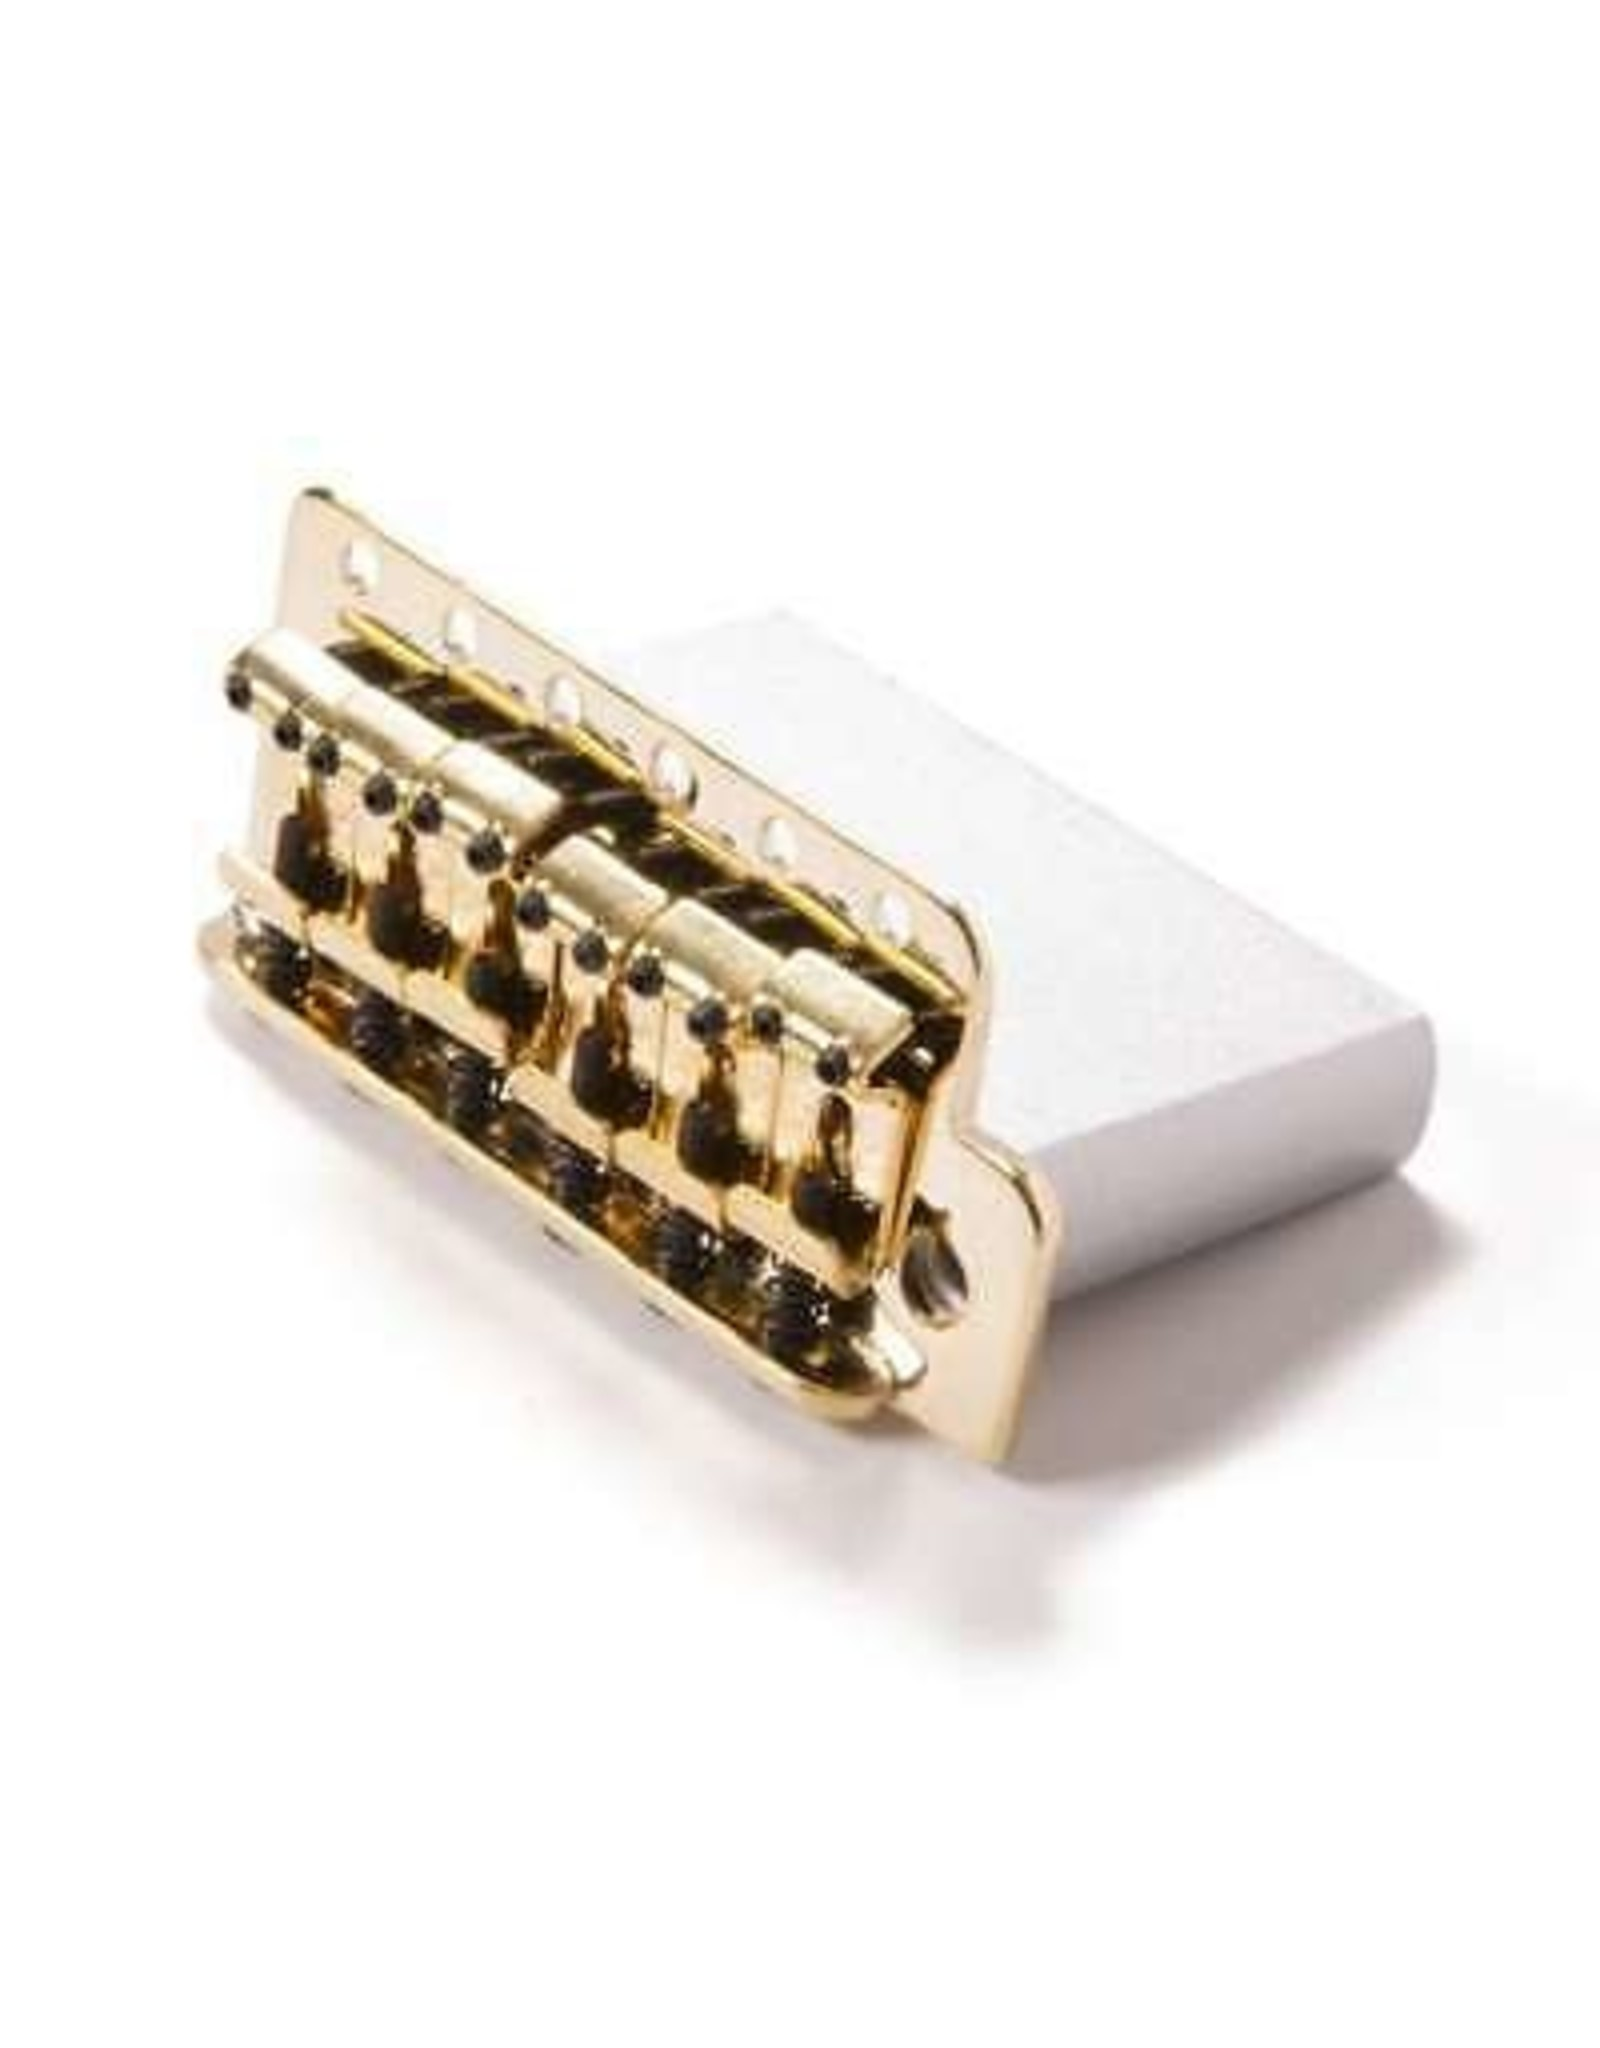 "Fender Fender Vintage-Style Strat Bridge Assembly, (2-3/16"" Spacing), Gold"